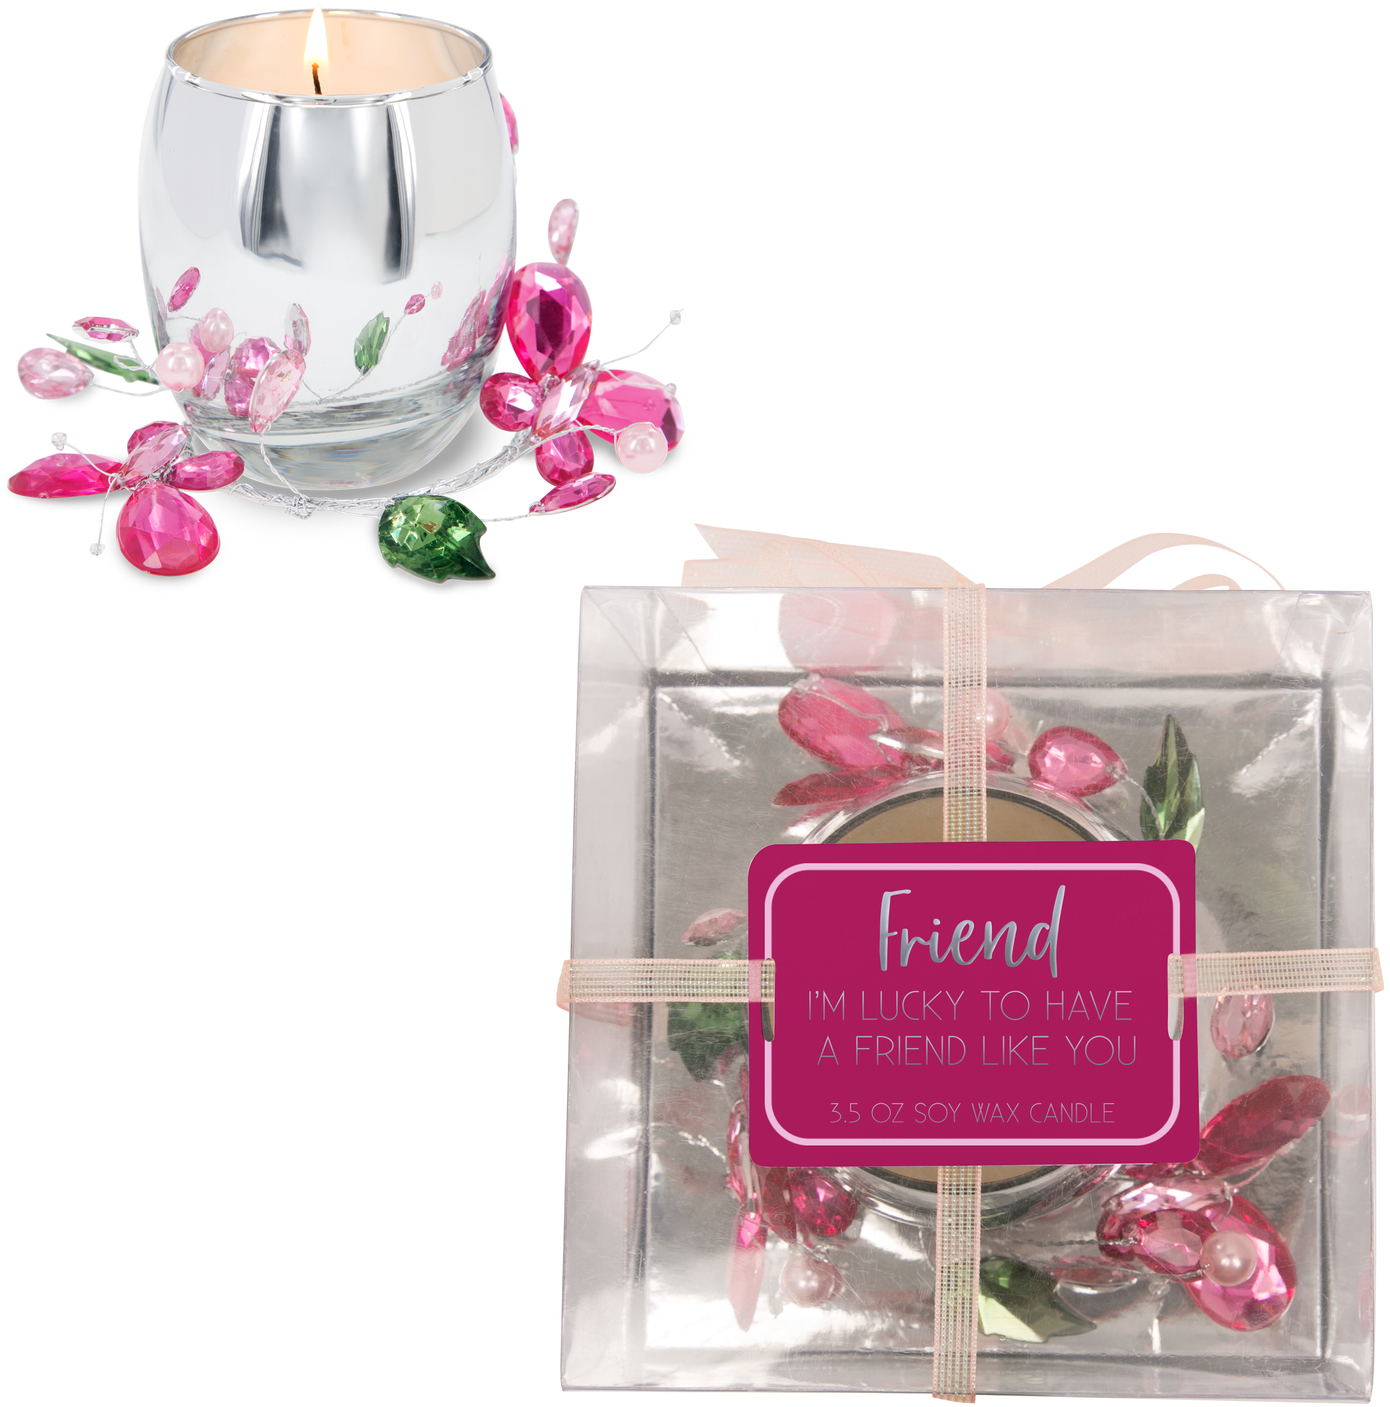 Friend Pink Butterfly by Reflections of You - Friend Pink Butterfly - 3.5oz 100% Soy Wax Candle Scent: Jasmine